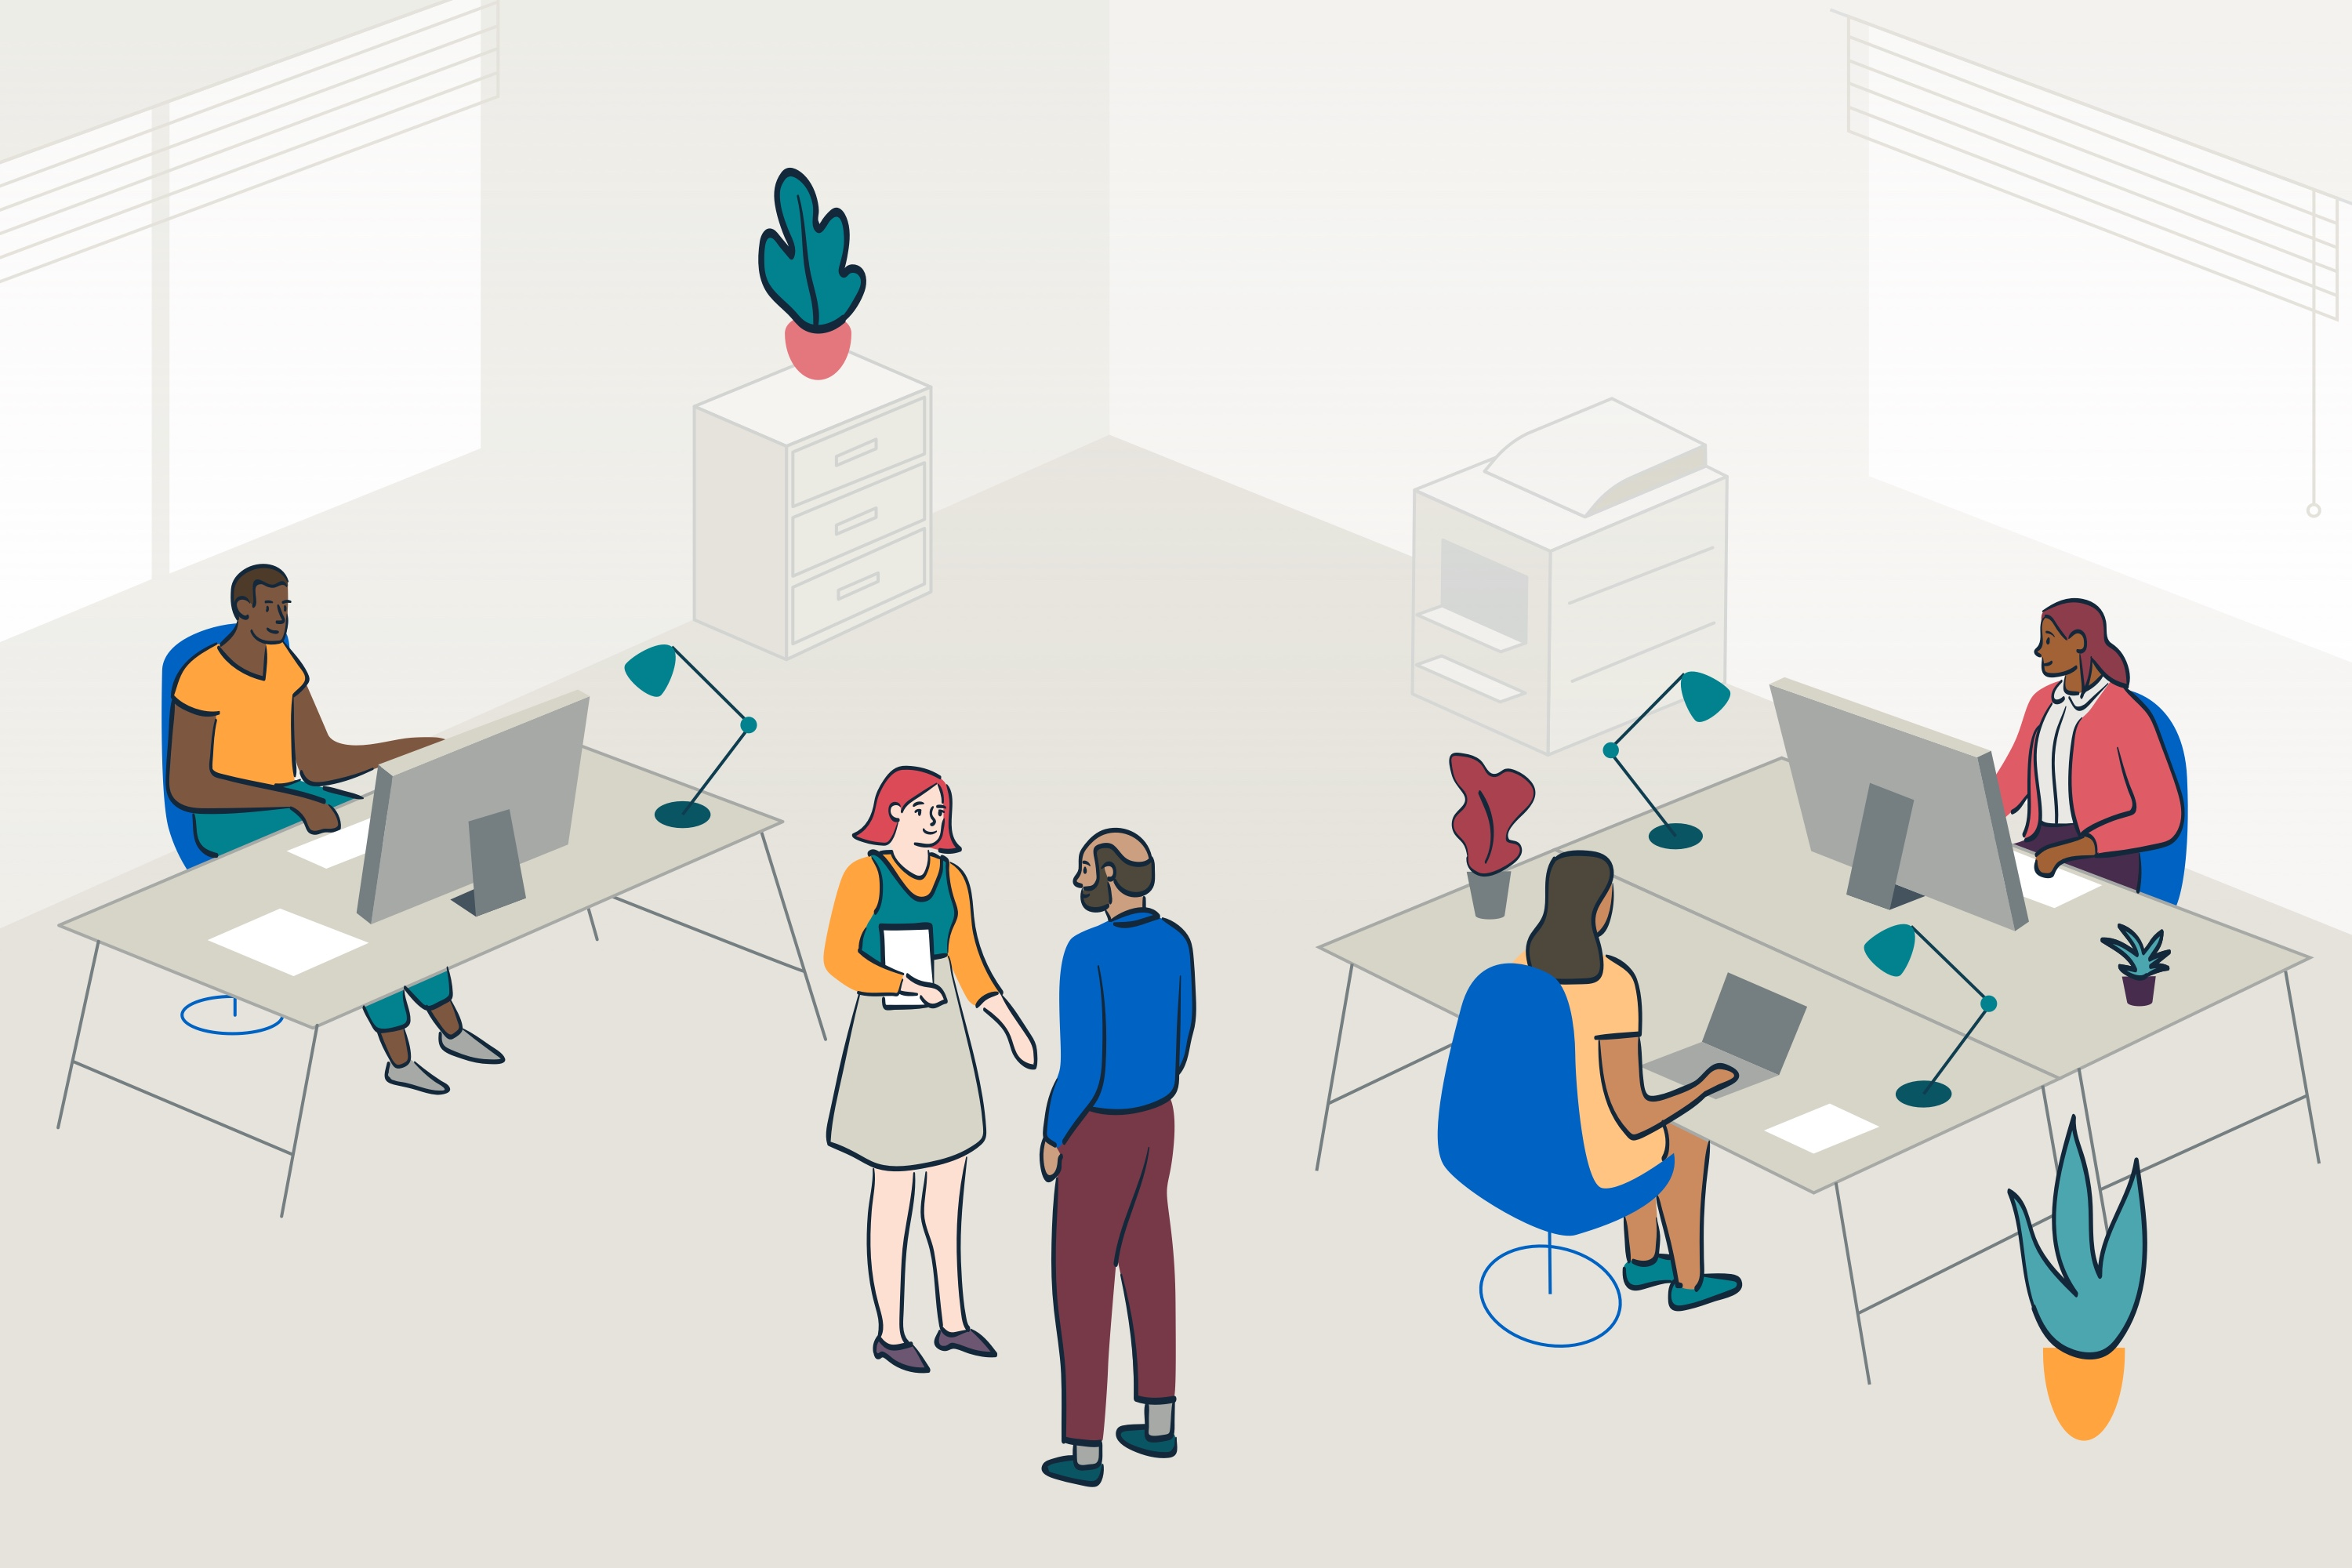 Illustration of employees in an office setting